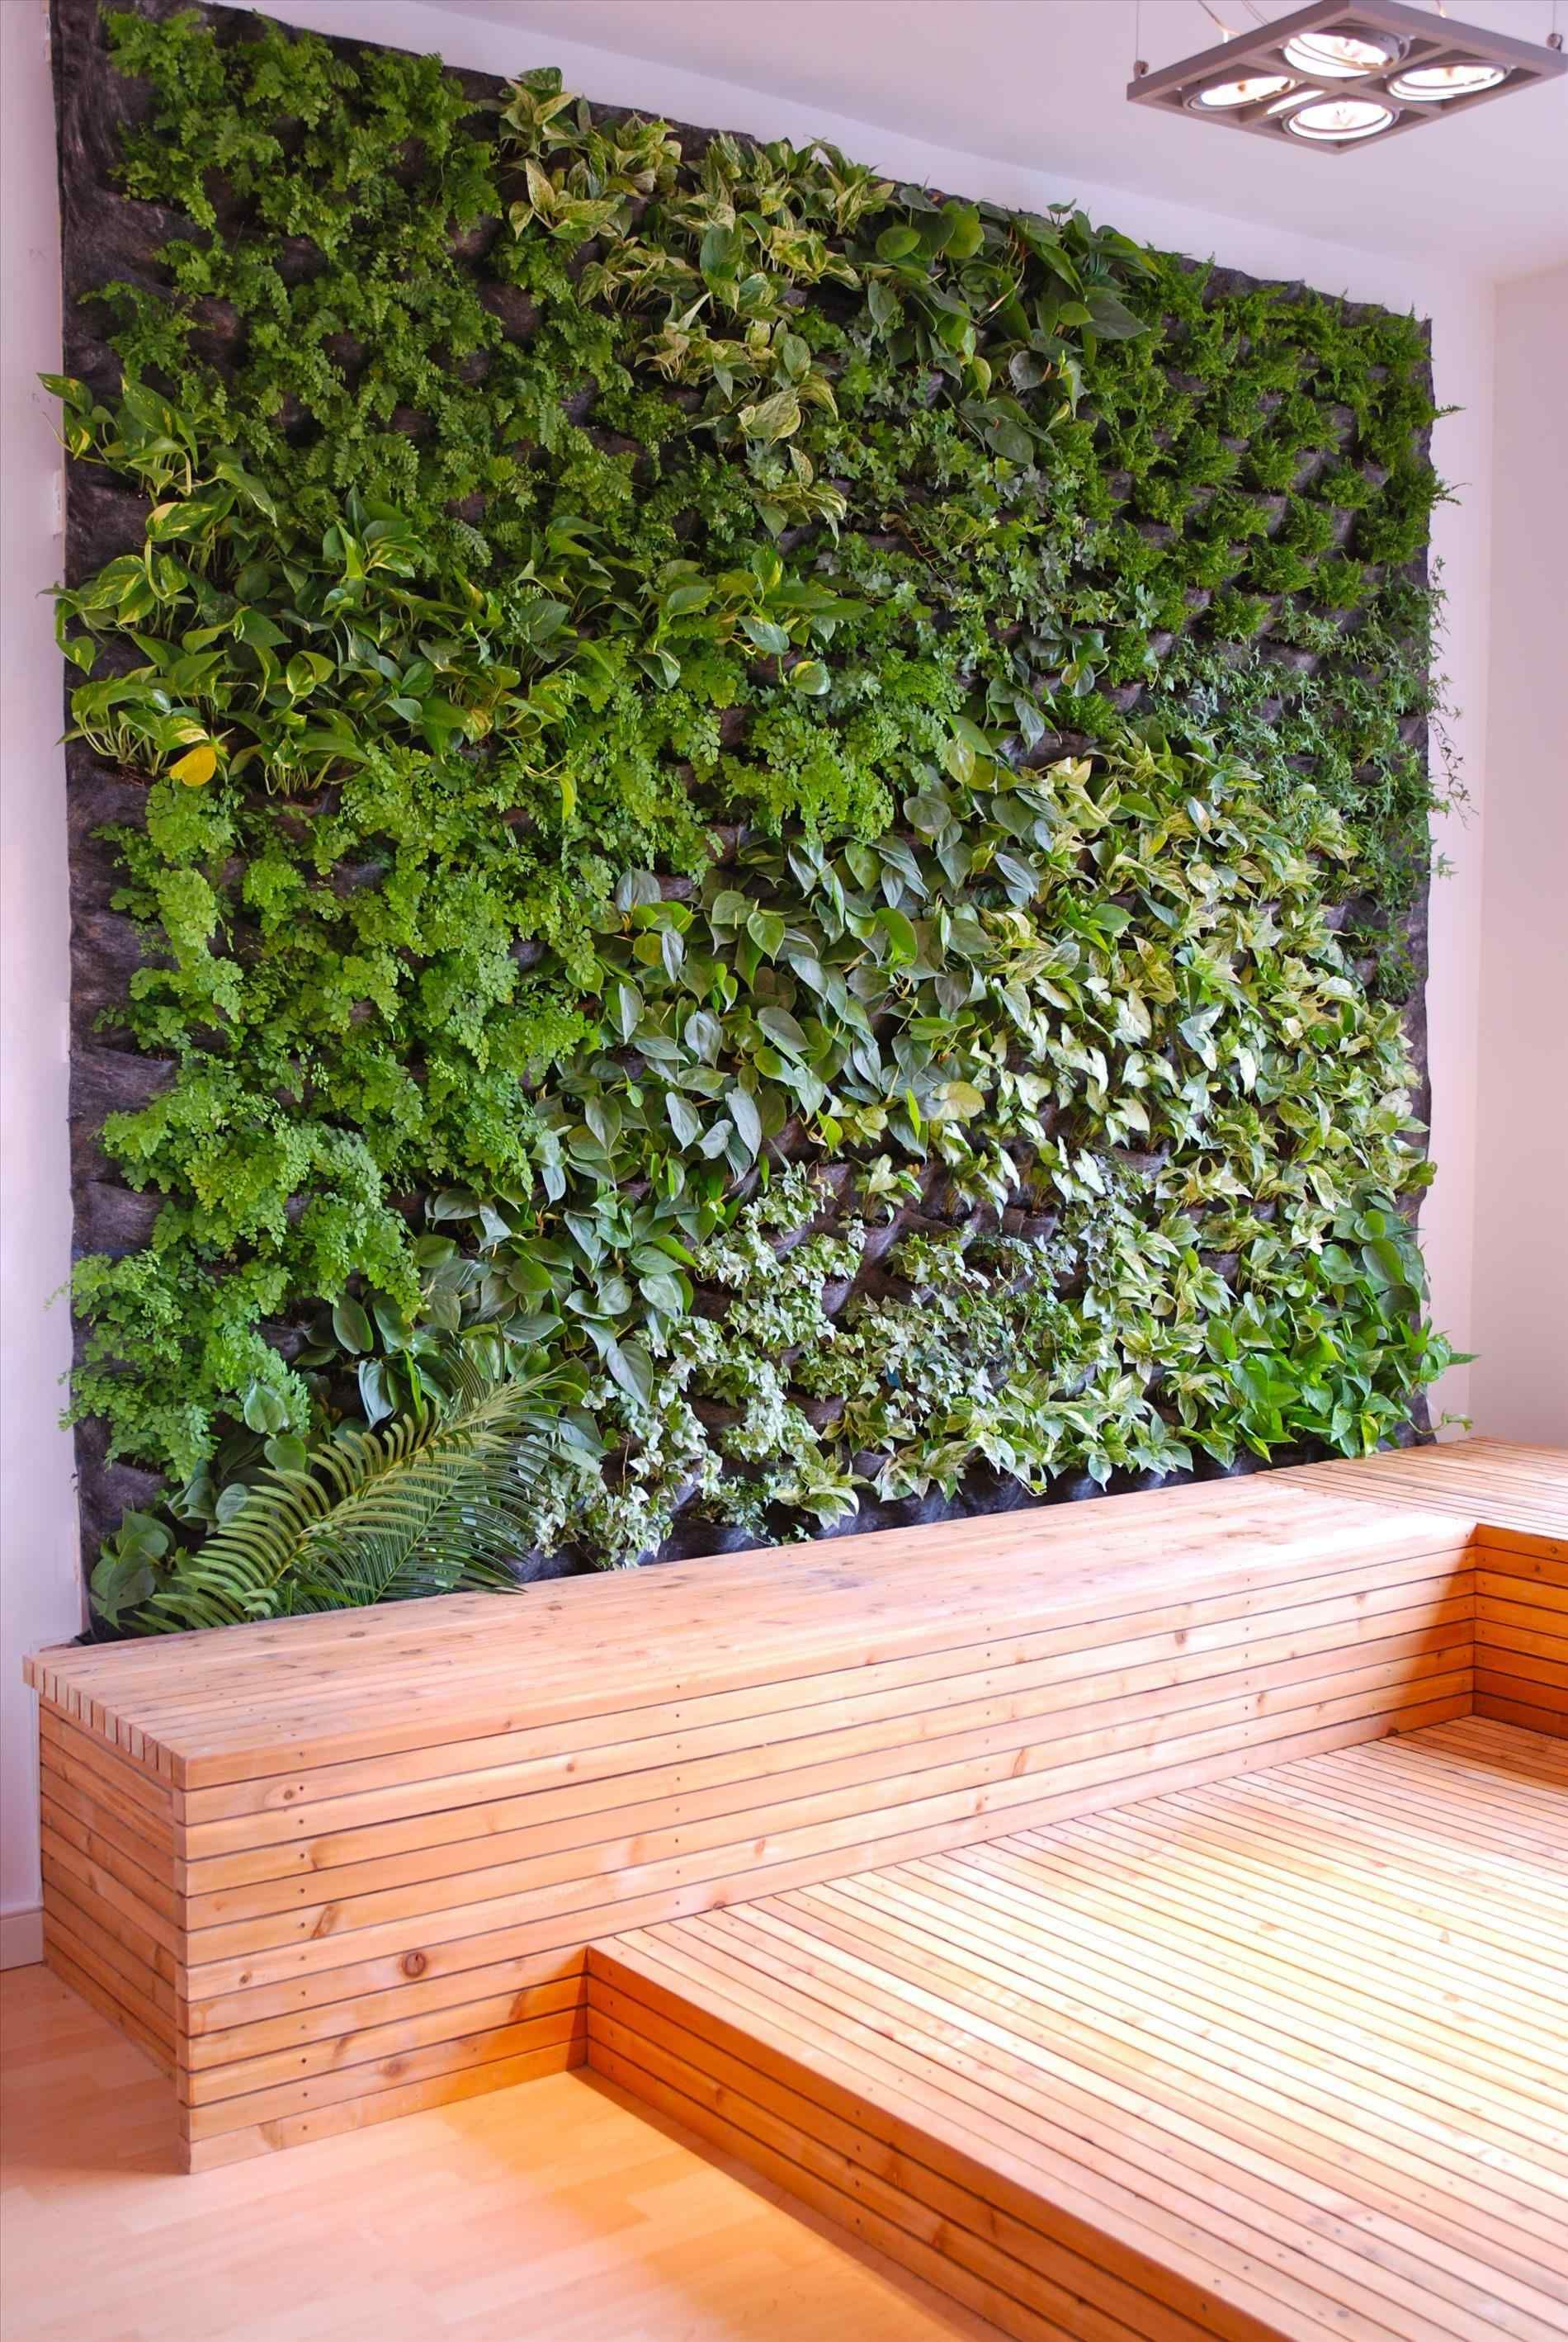 15 Incredible Living Wall Garden Containers Design Vertical